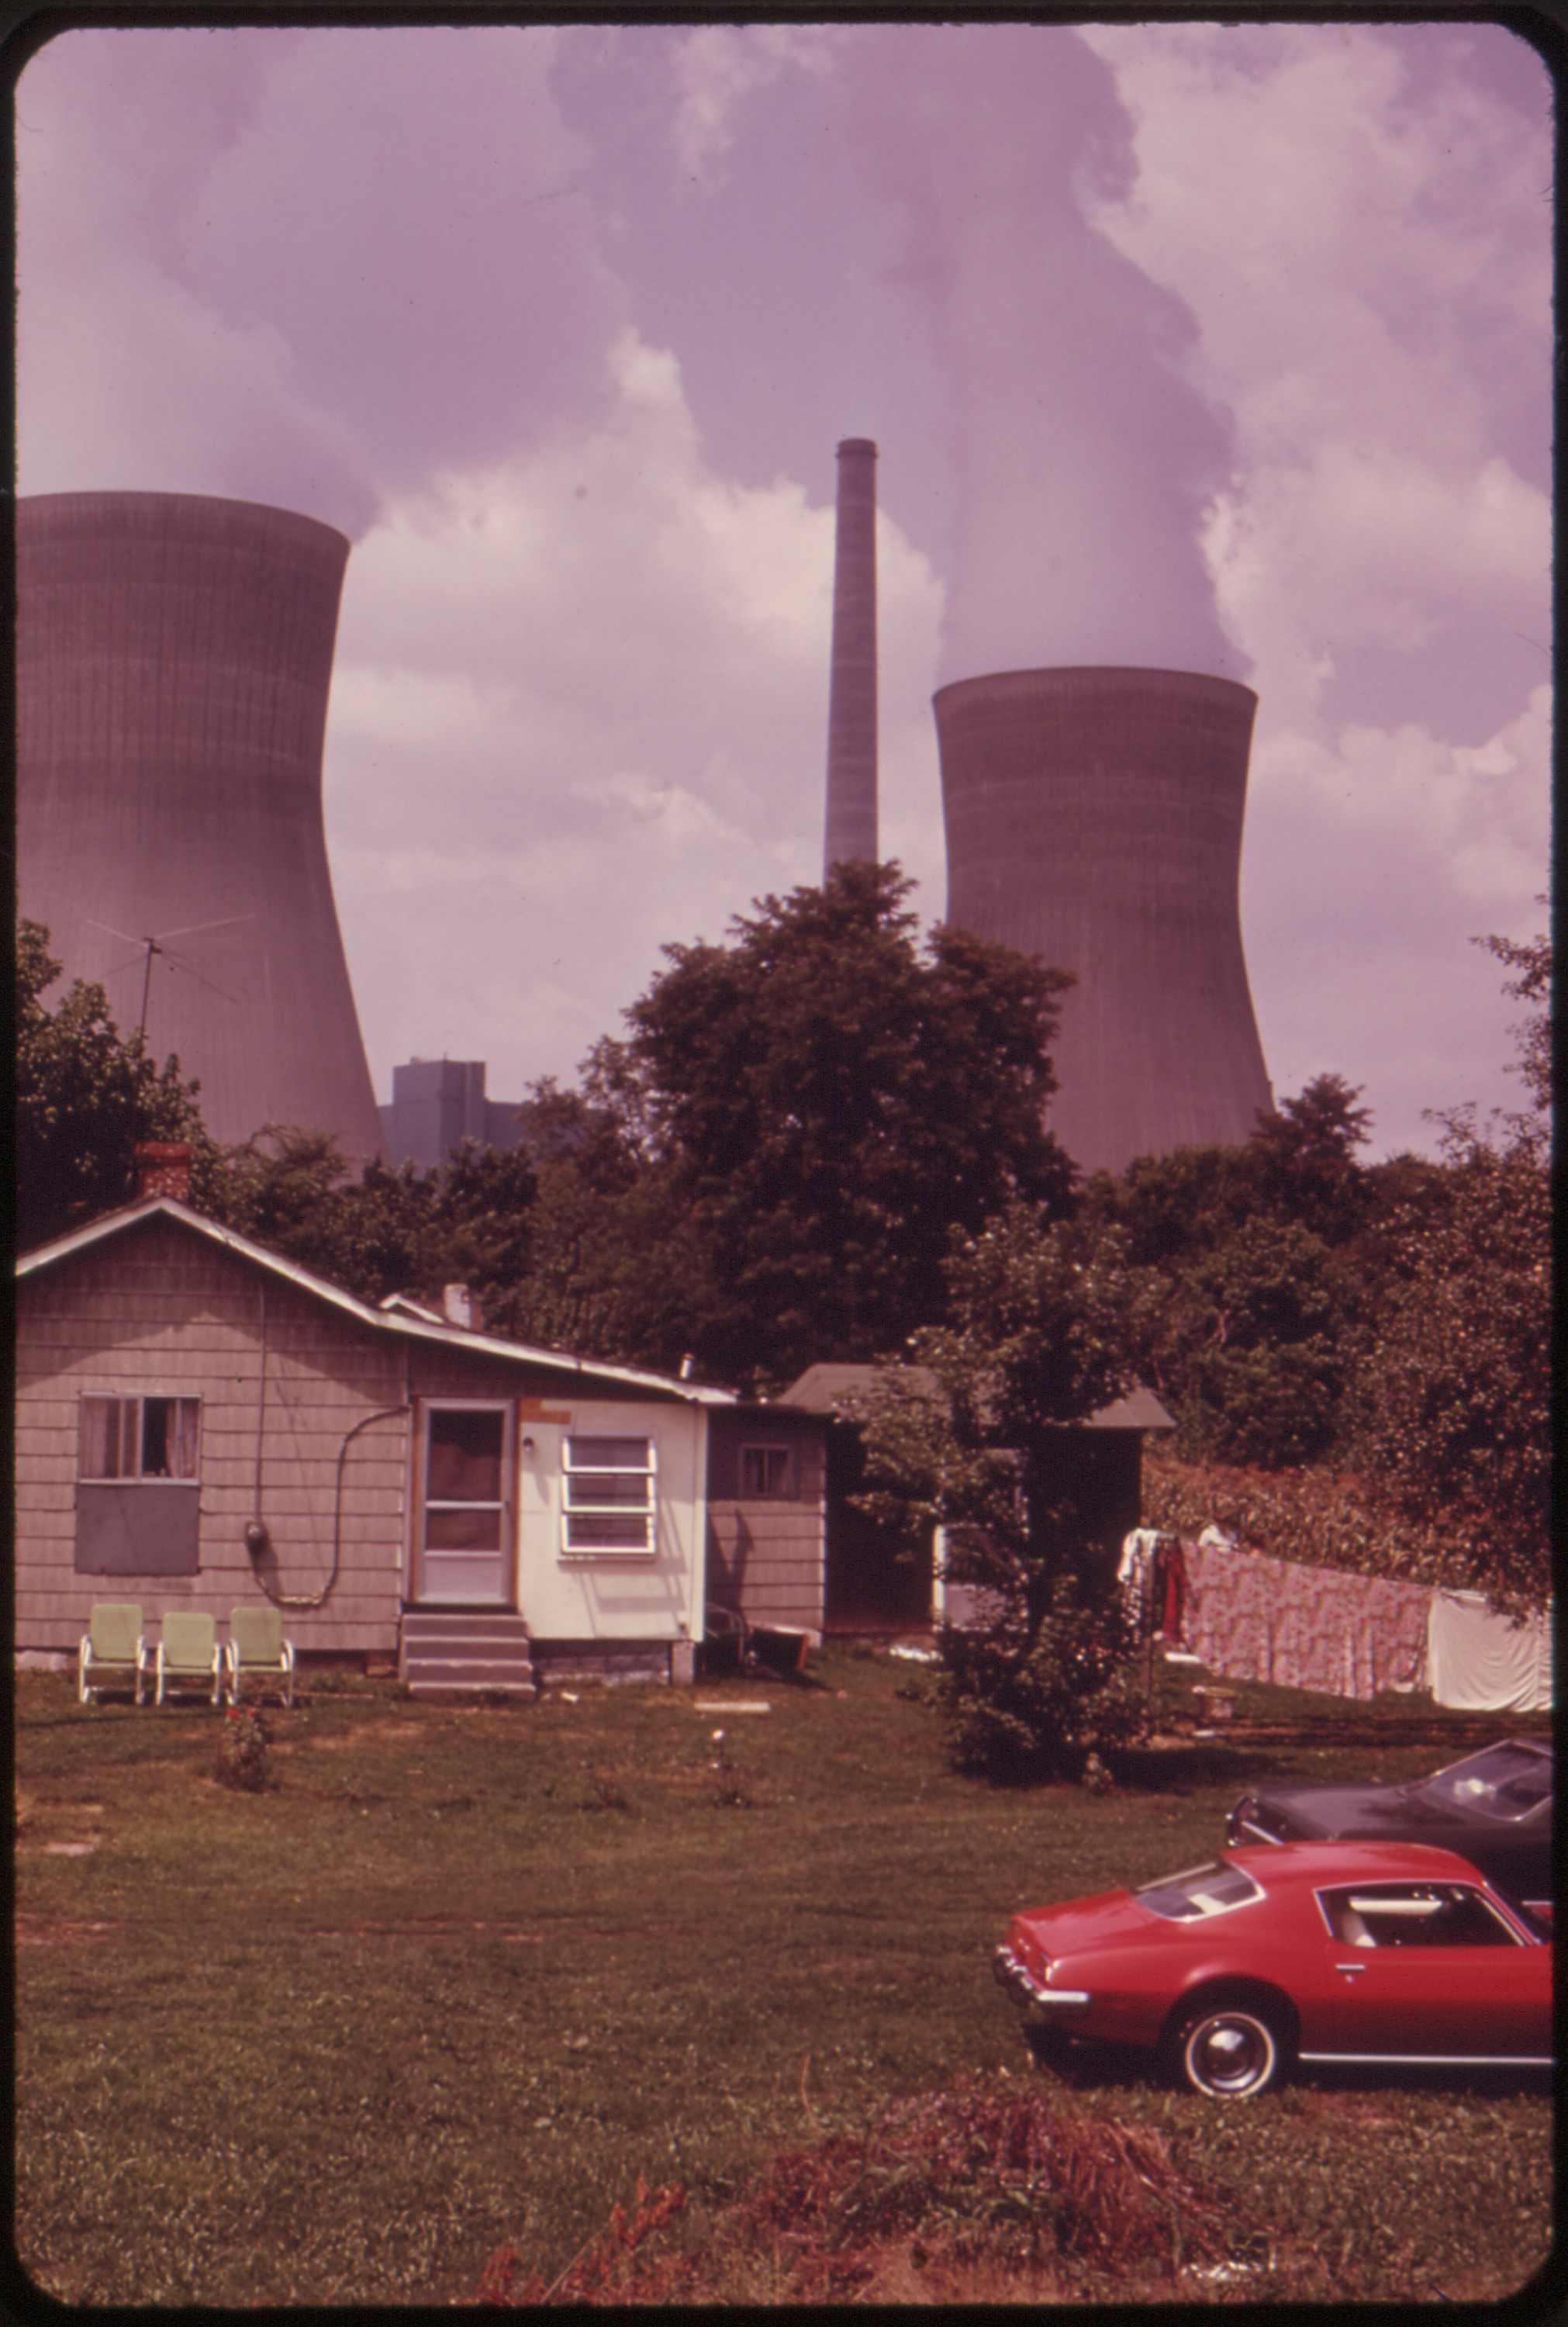 central states of usa with File Water Cooling Towers Of The John Amos Power Plant Loom Over Poca  Wv  Home That Is On The Other Side Of The Kanawha      Nara   551152 on File Church of St  Stephen  St  Stephen  Minnesota  1 additionally USACcleaverK likewise Ostrom Facts in addition File WATER COOLING TOWERS OF THE JOHN AMOS POWER PLANT LOOM OVER POCA  WV  HOME THAT IS ON THE OTHER SIDE OF THE KANAWHA      NARA   551152 furthermore Westminster Presbyterian Church Minneapolis 2.